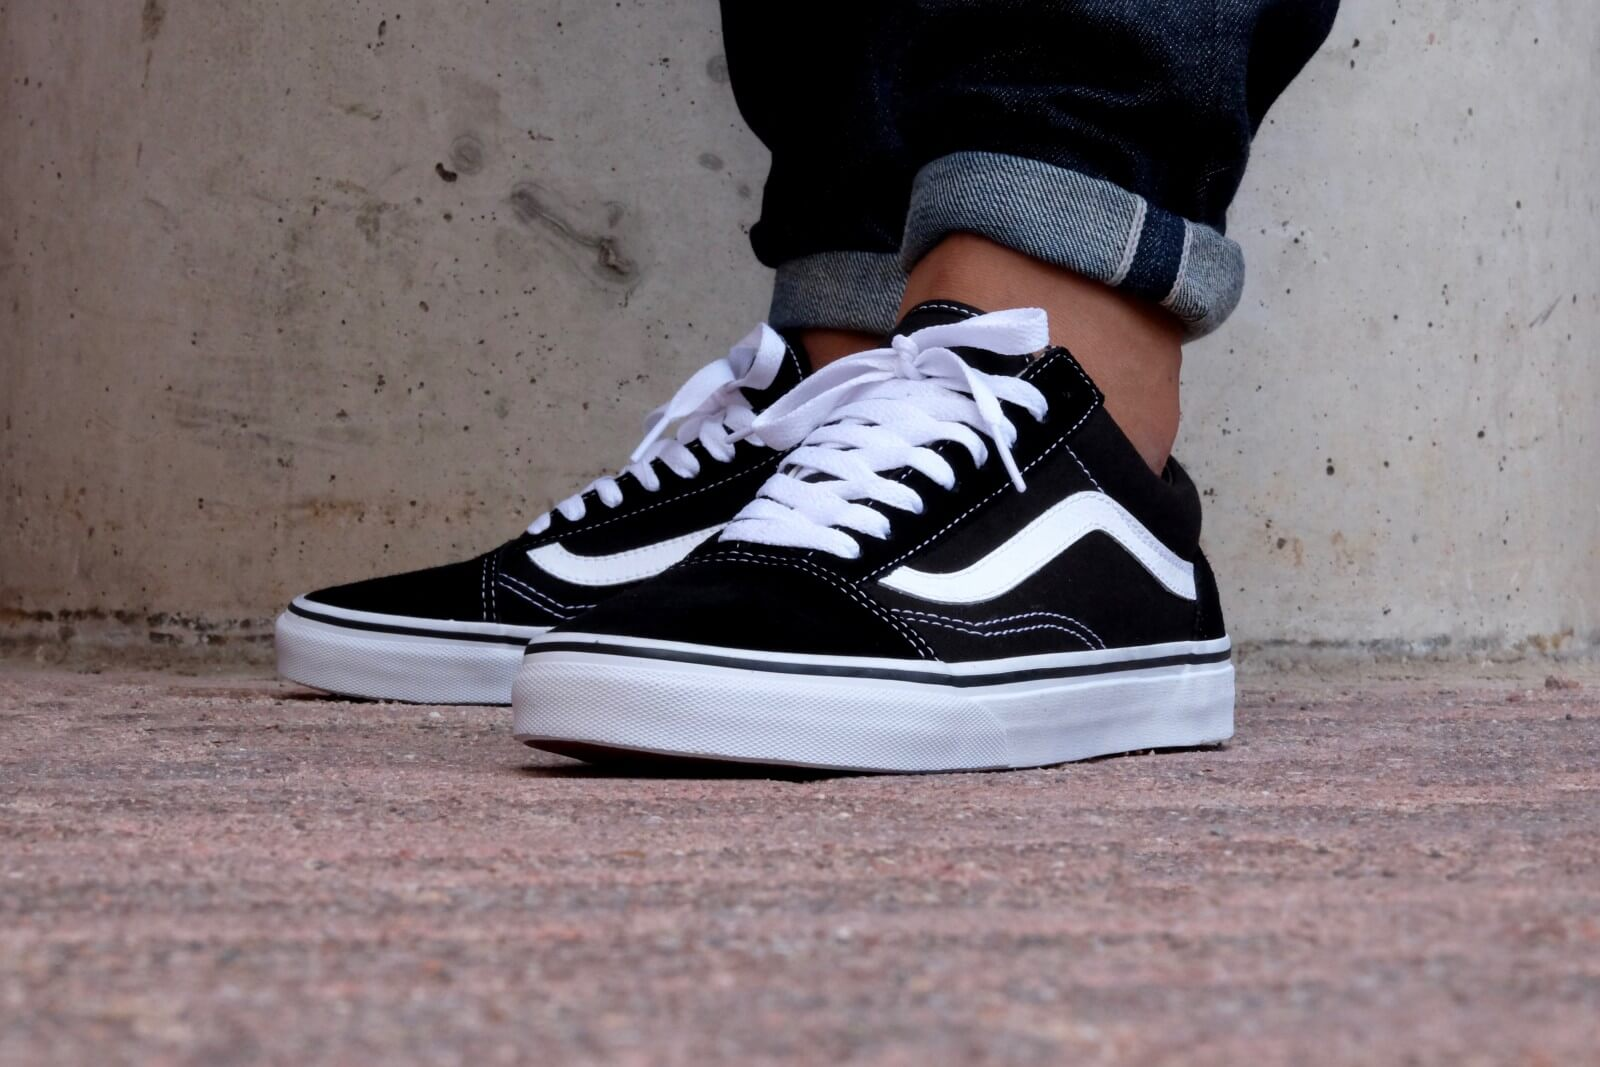 vans old skool 35